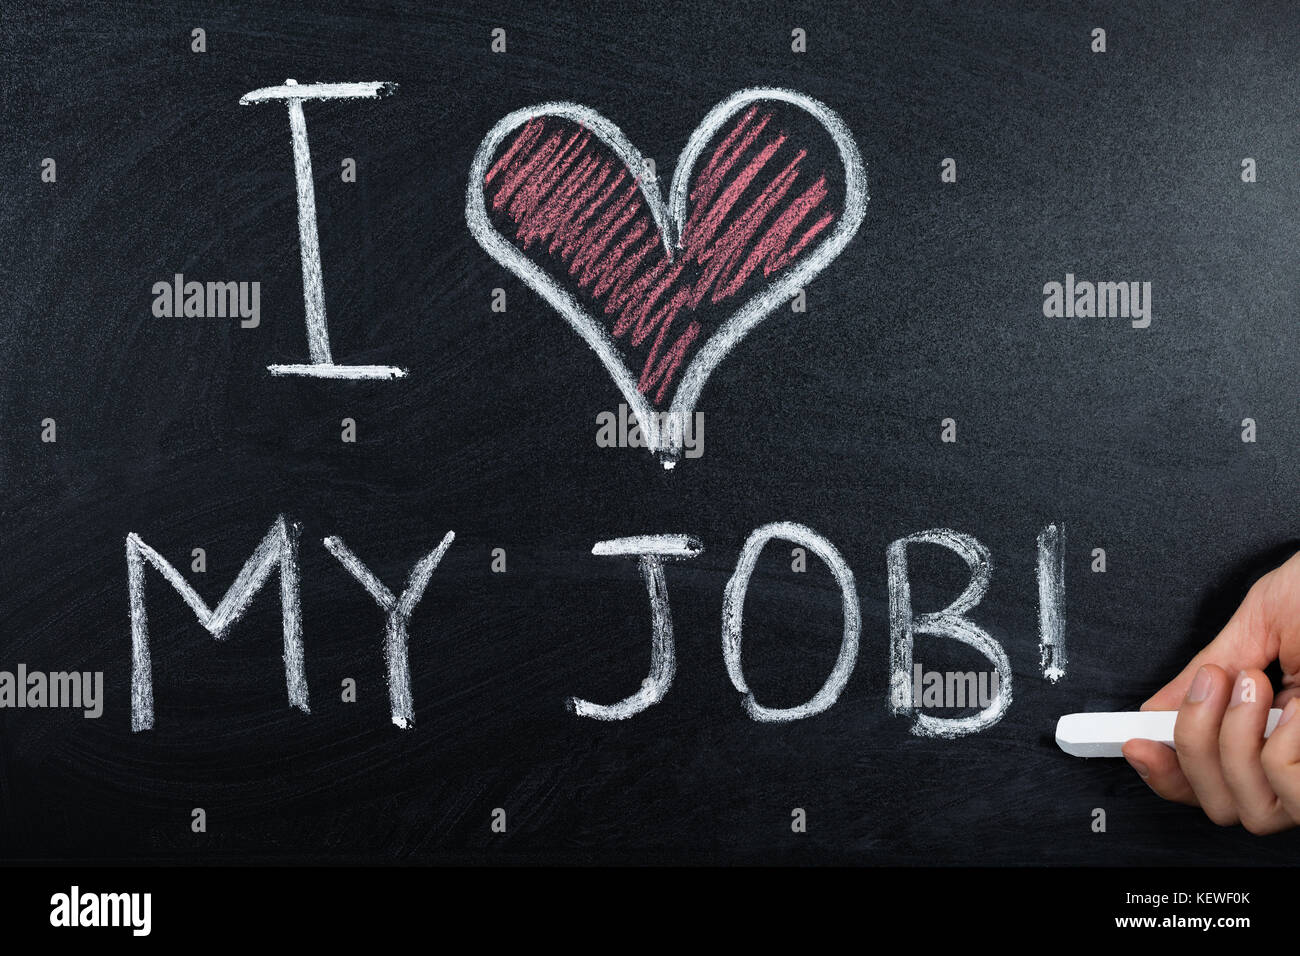 A Person Hand Showing Job Loving Concept Written On Blackboard Stock Photo